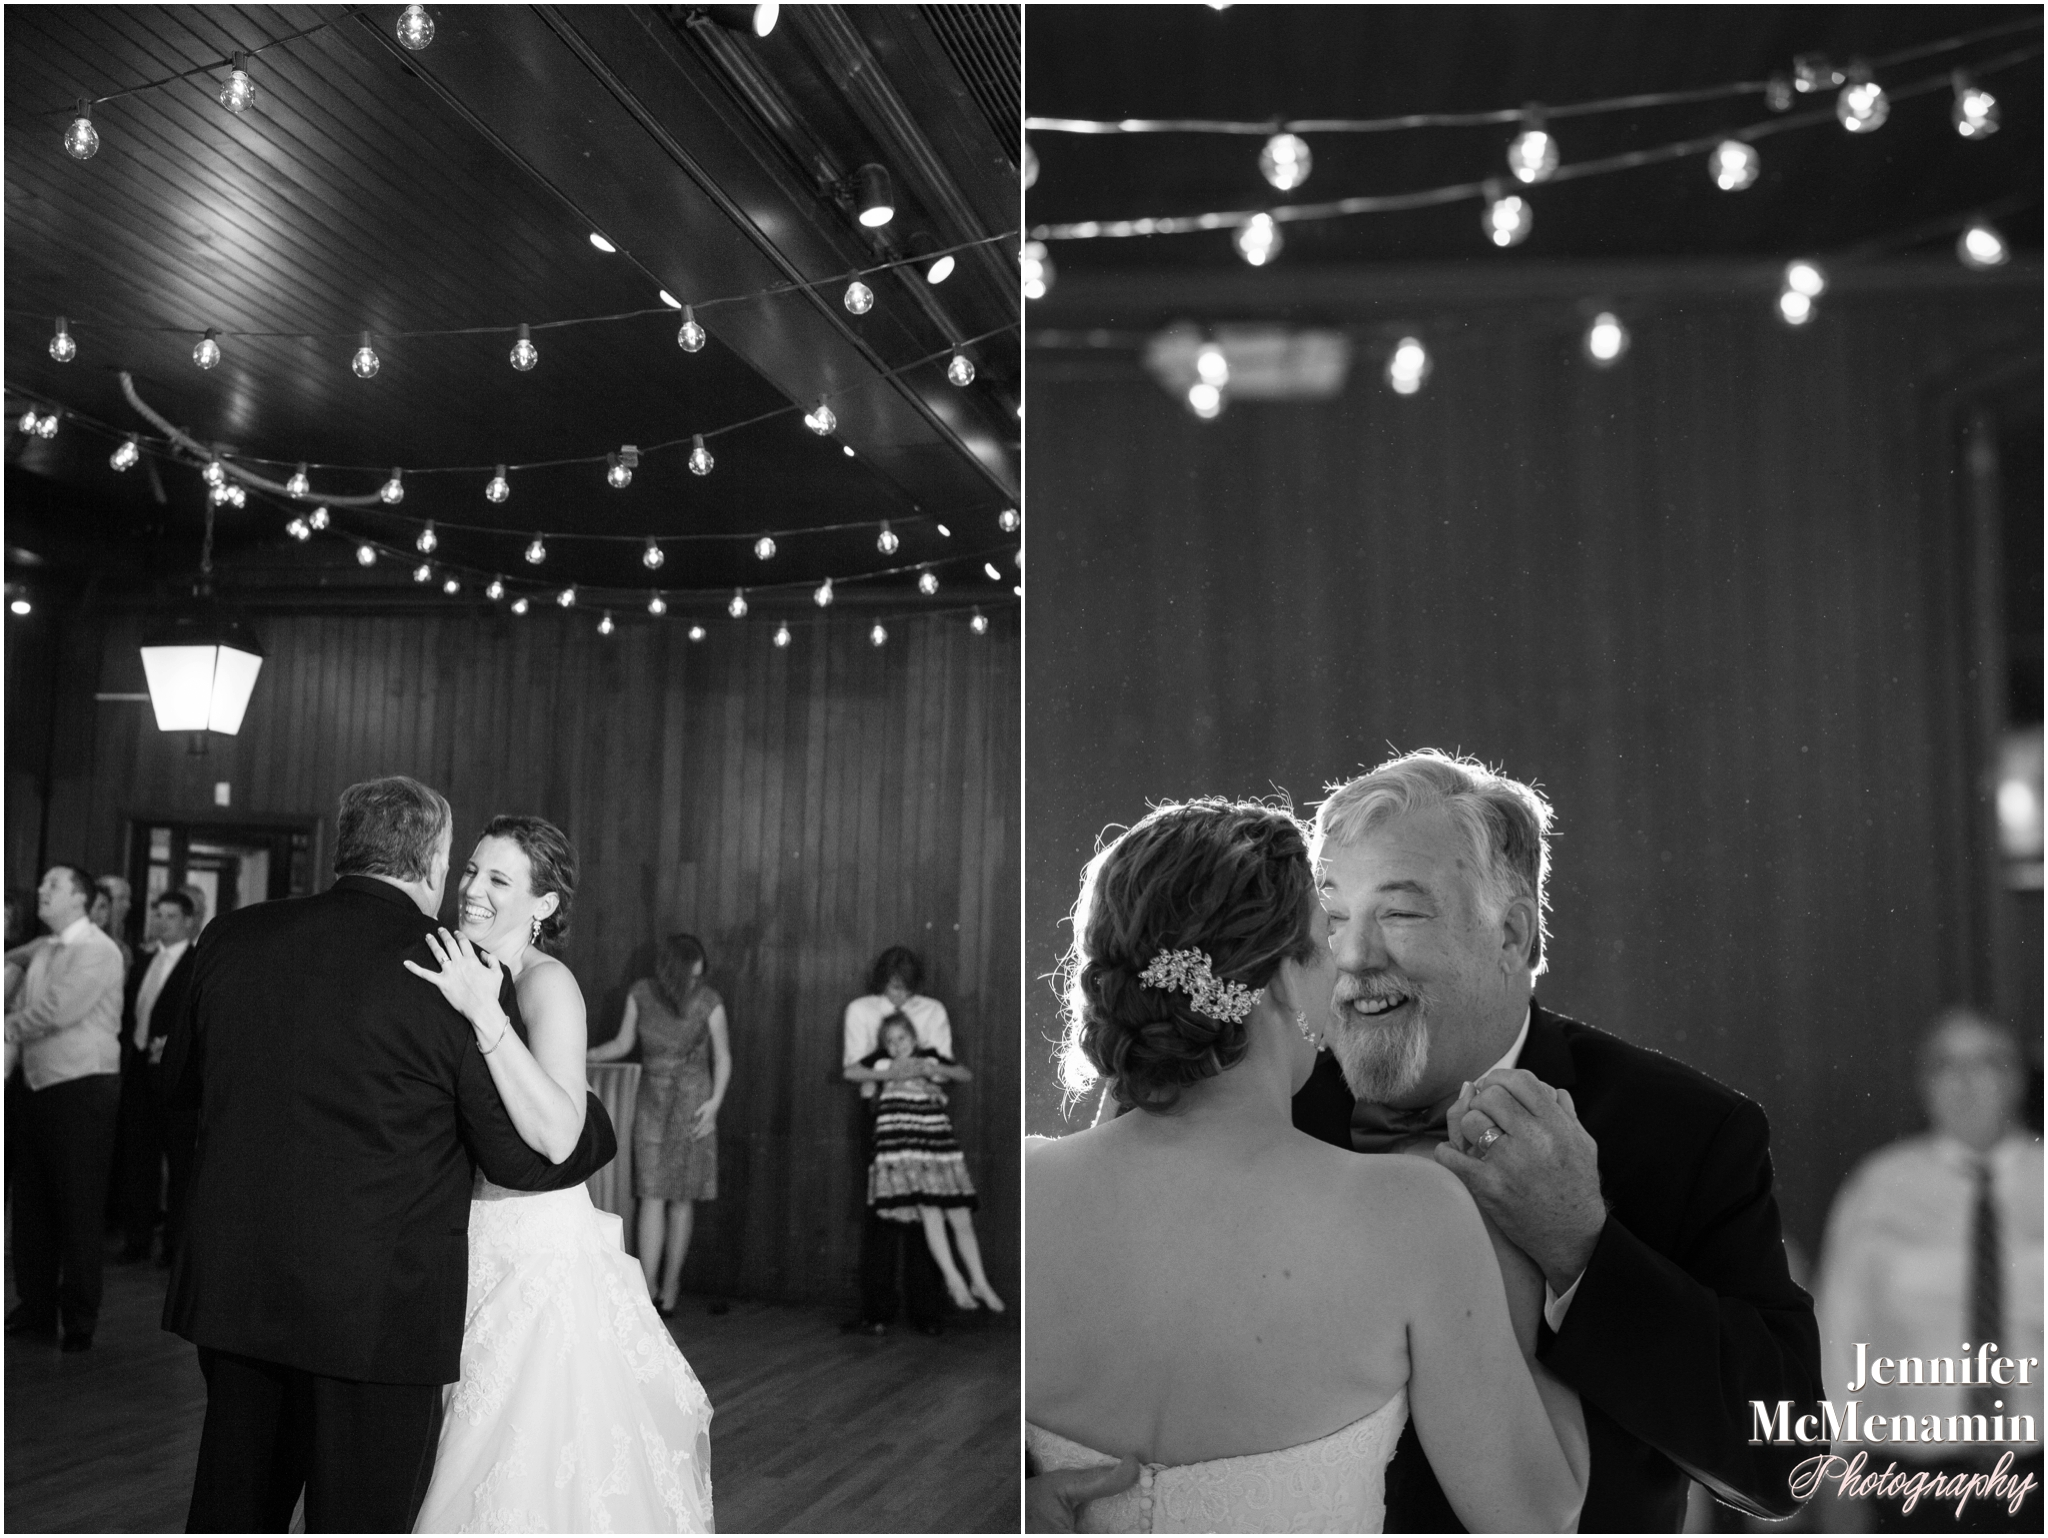 092-HenningMiller_03081-0666_JenniferMcMenaminPhotography_Evergreen-Museum-And-Carriage-House_Evergreen-wedding_Baltimore-wedding-photographer_Baltimore-wedding-photography